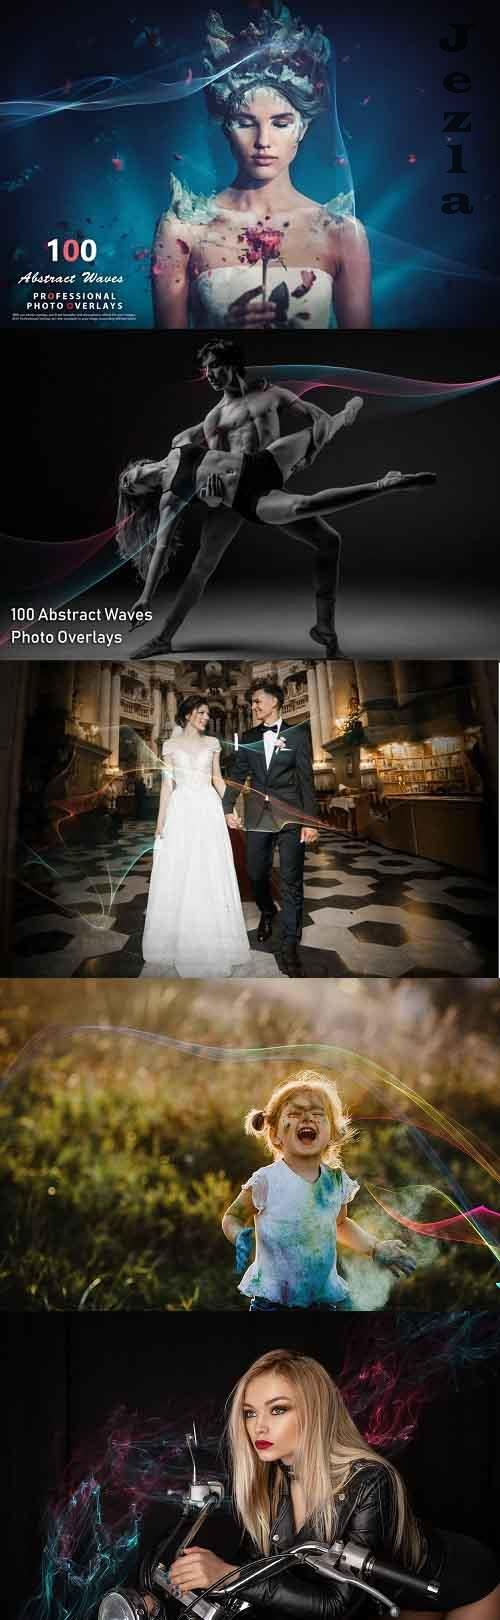 100 Abstract Waves Photo Overlays - 992746